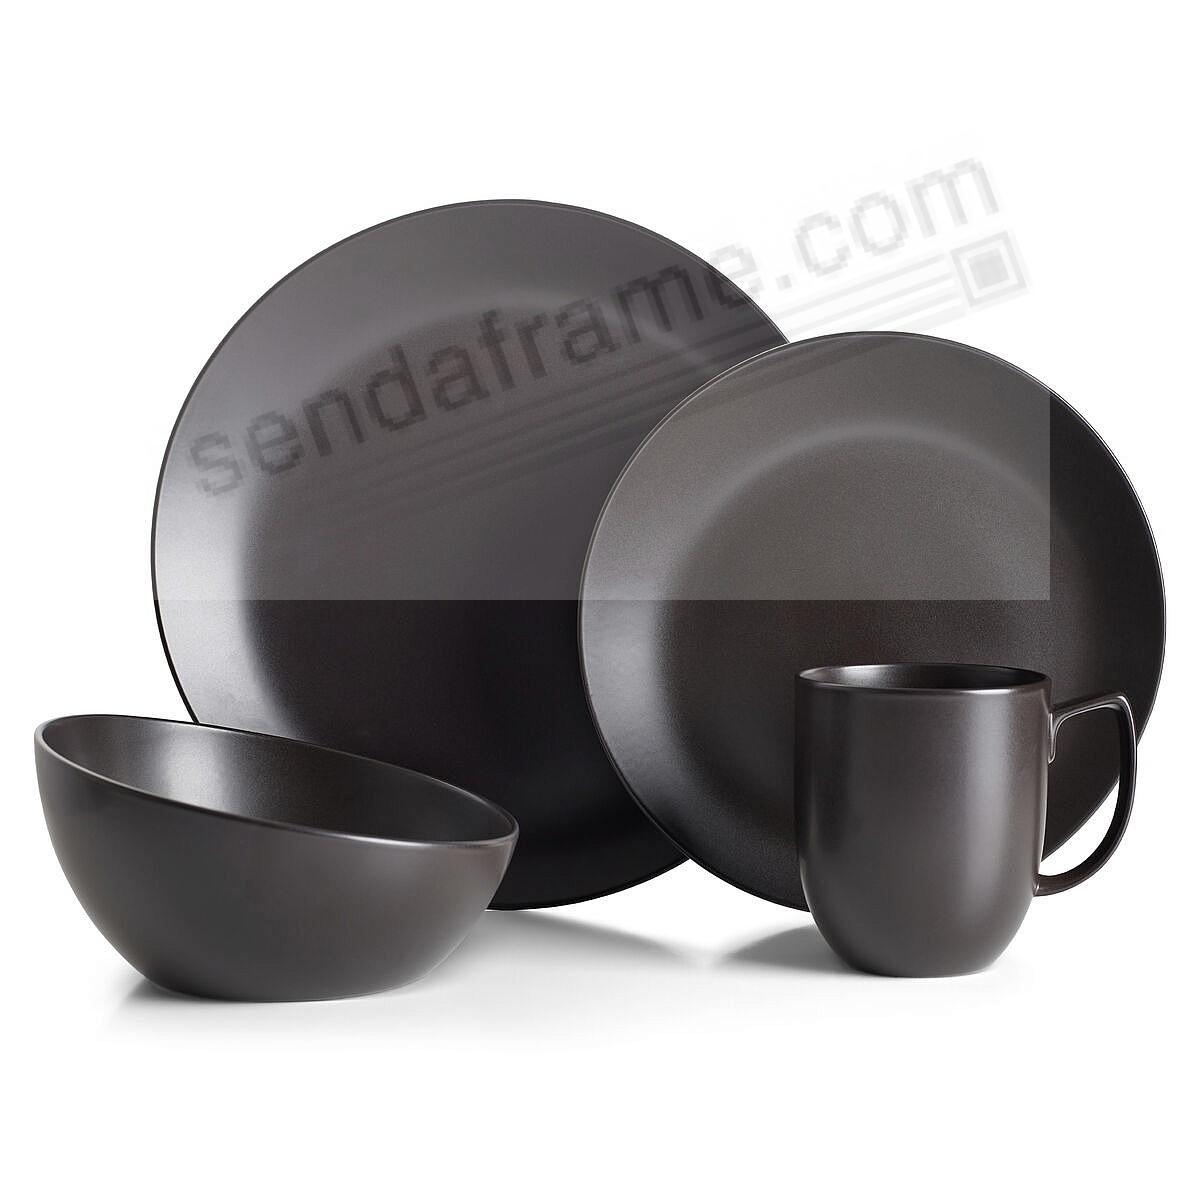 ORBIT DINNERWARE 4-pc Place Setting CELESTIAL-BLACK by Nambe®